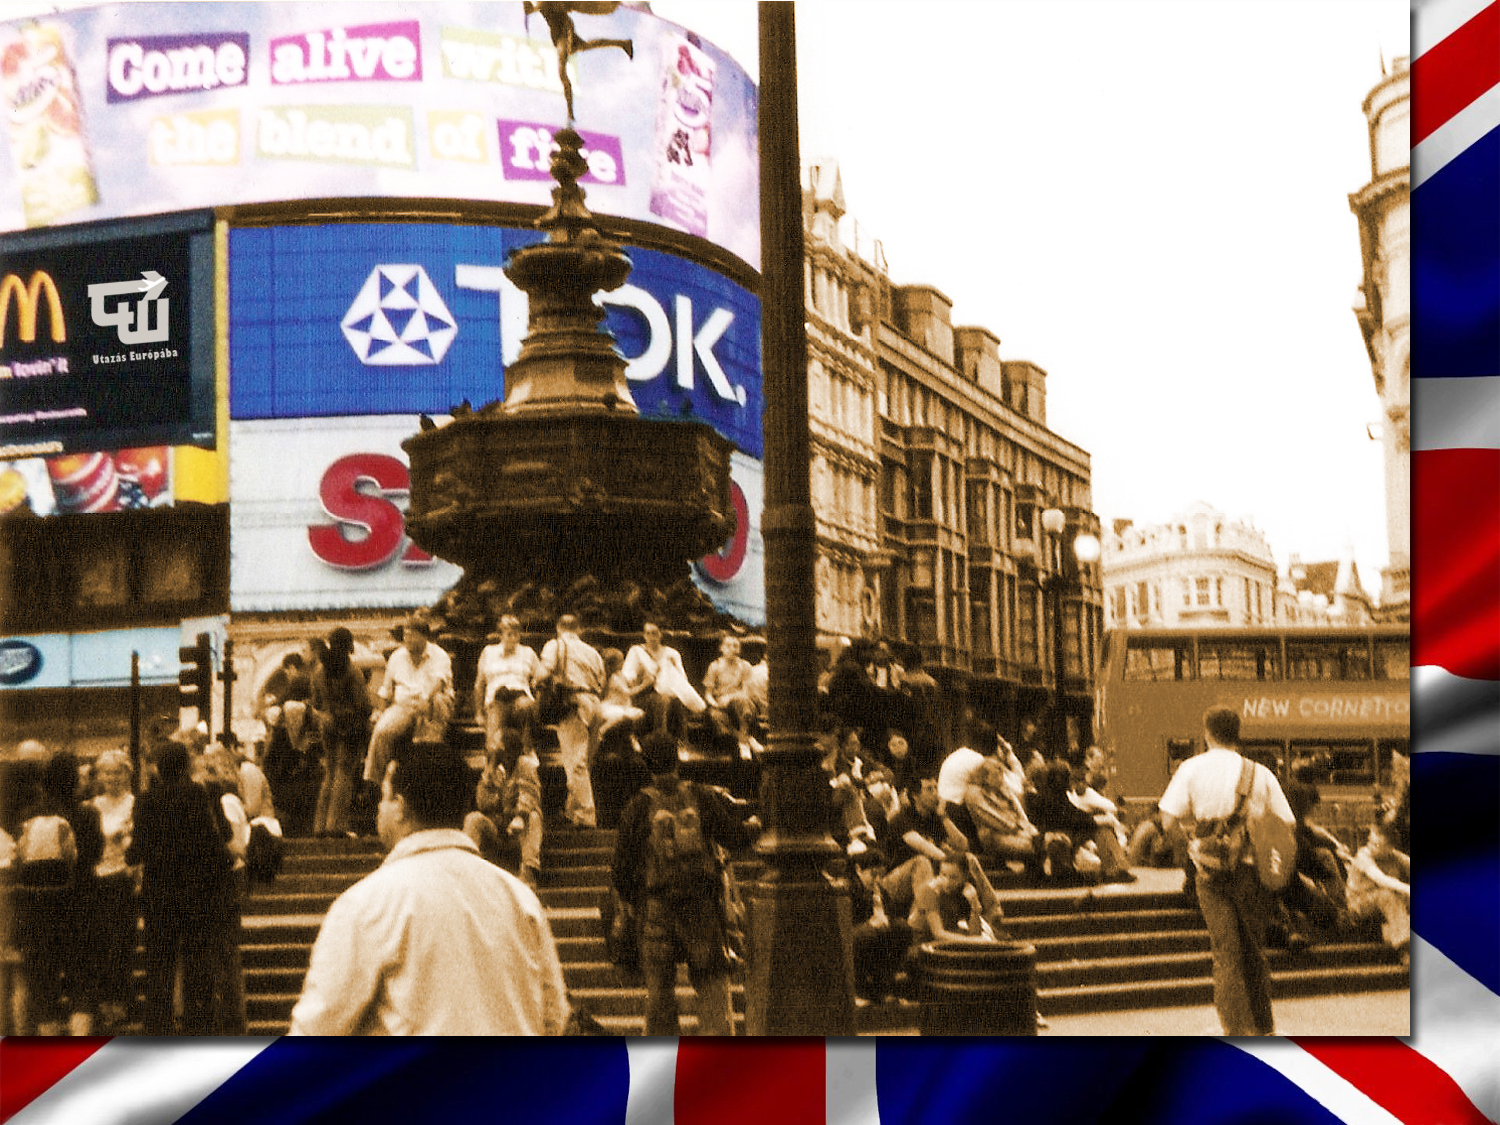 04_piccadilly_circus_london_nagy-britannia_anglia_great_britain_england_utazas_europaba.jpg